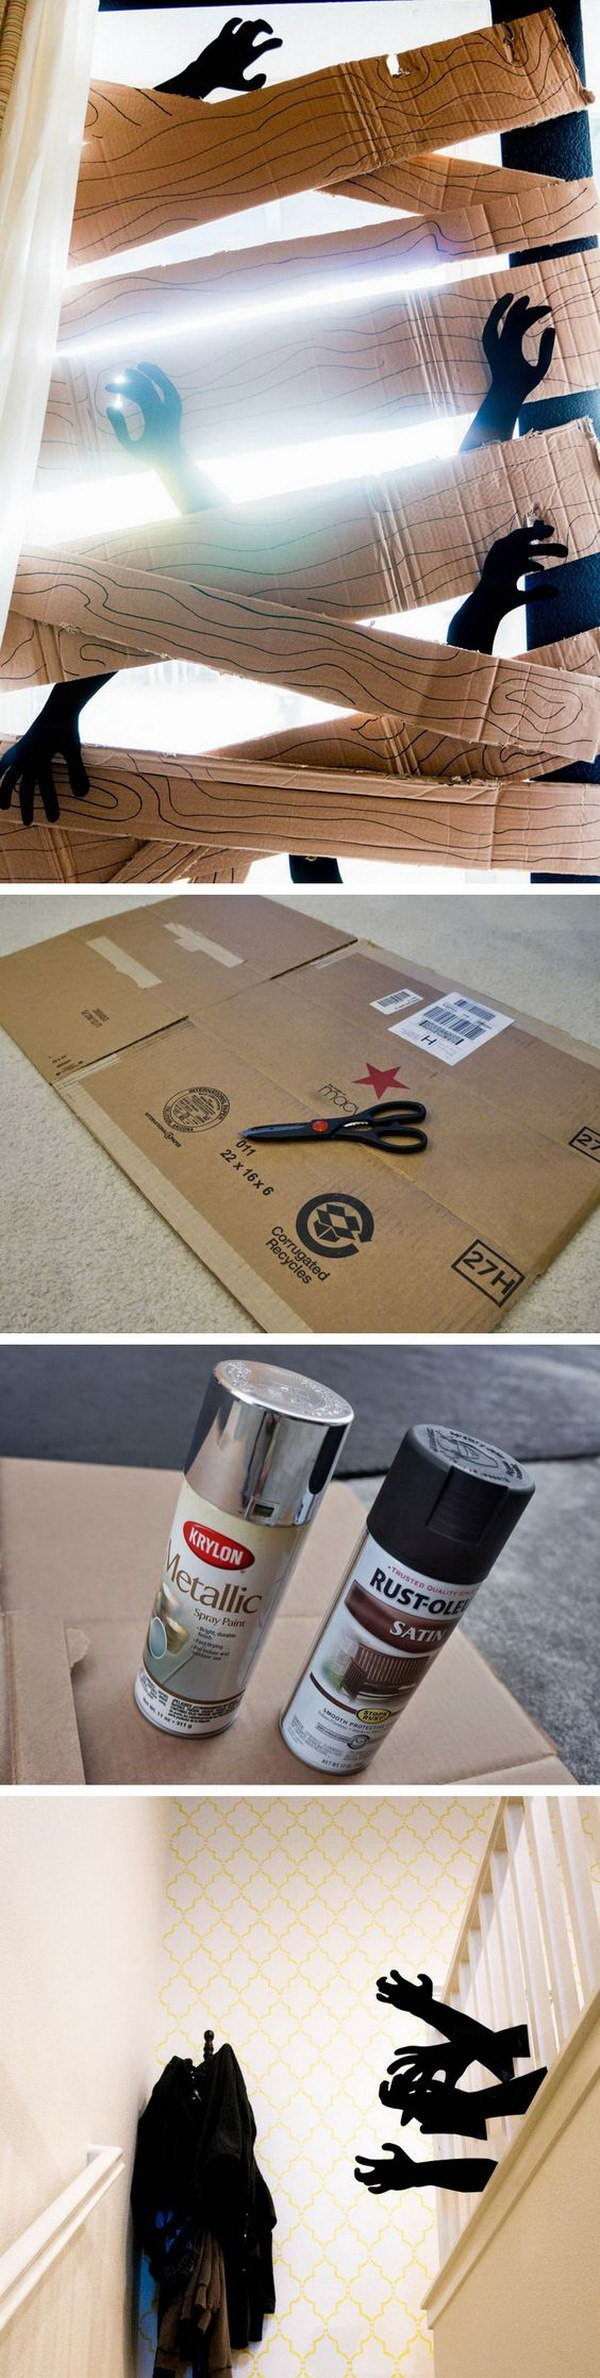 DIY Cardboard Zombie Barricade. DIY zombie barricade, all made from cardboard! A fun and spooky addition to your Halloween decoration!